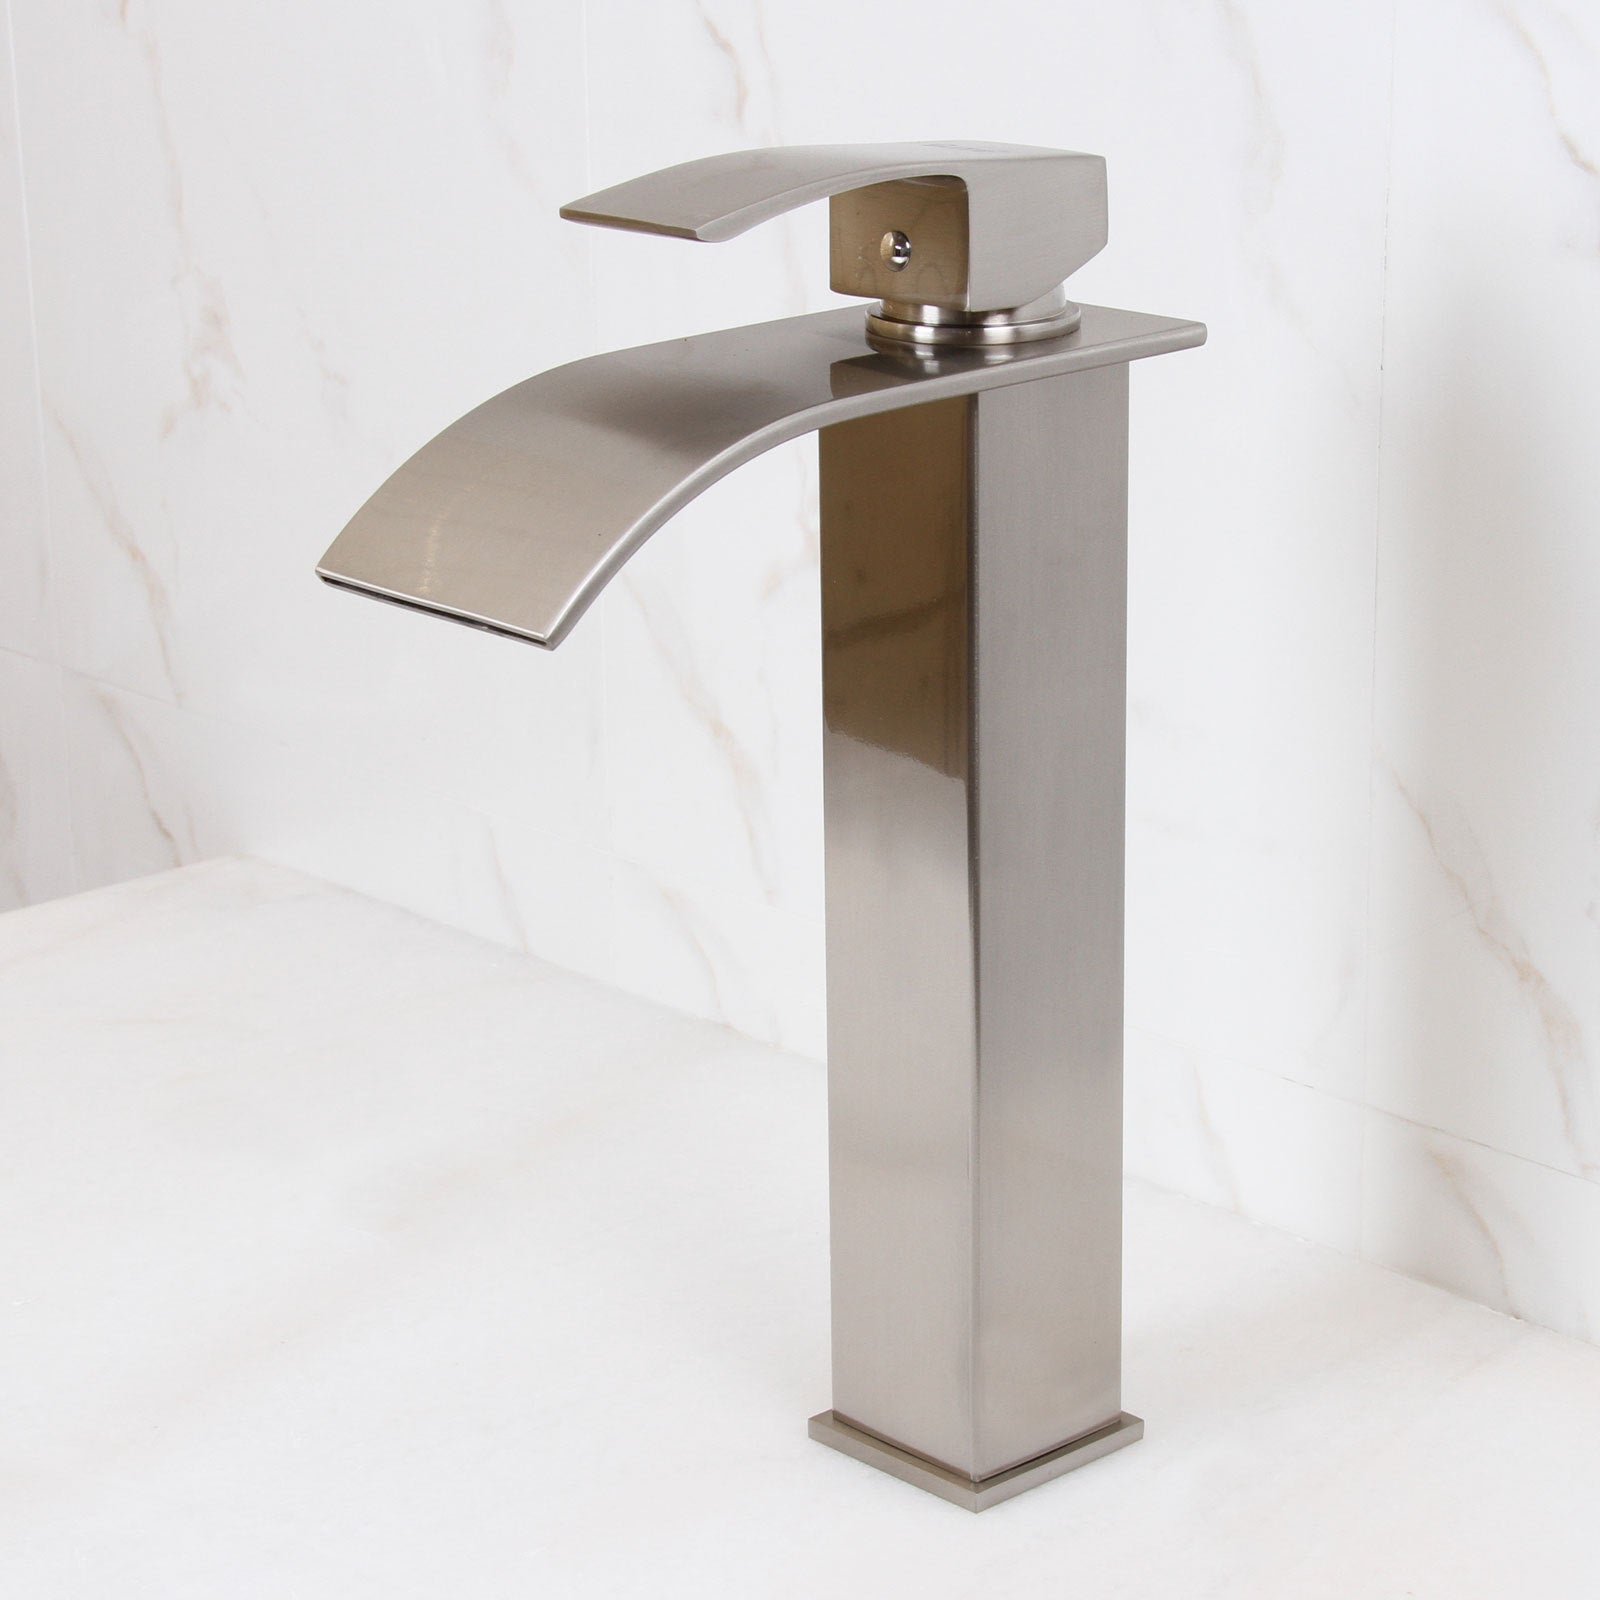 Bathroom Faucets For Less | Overstock.com